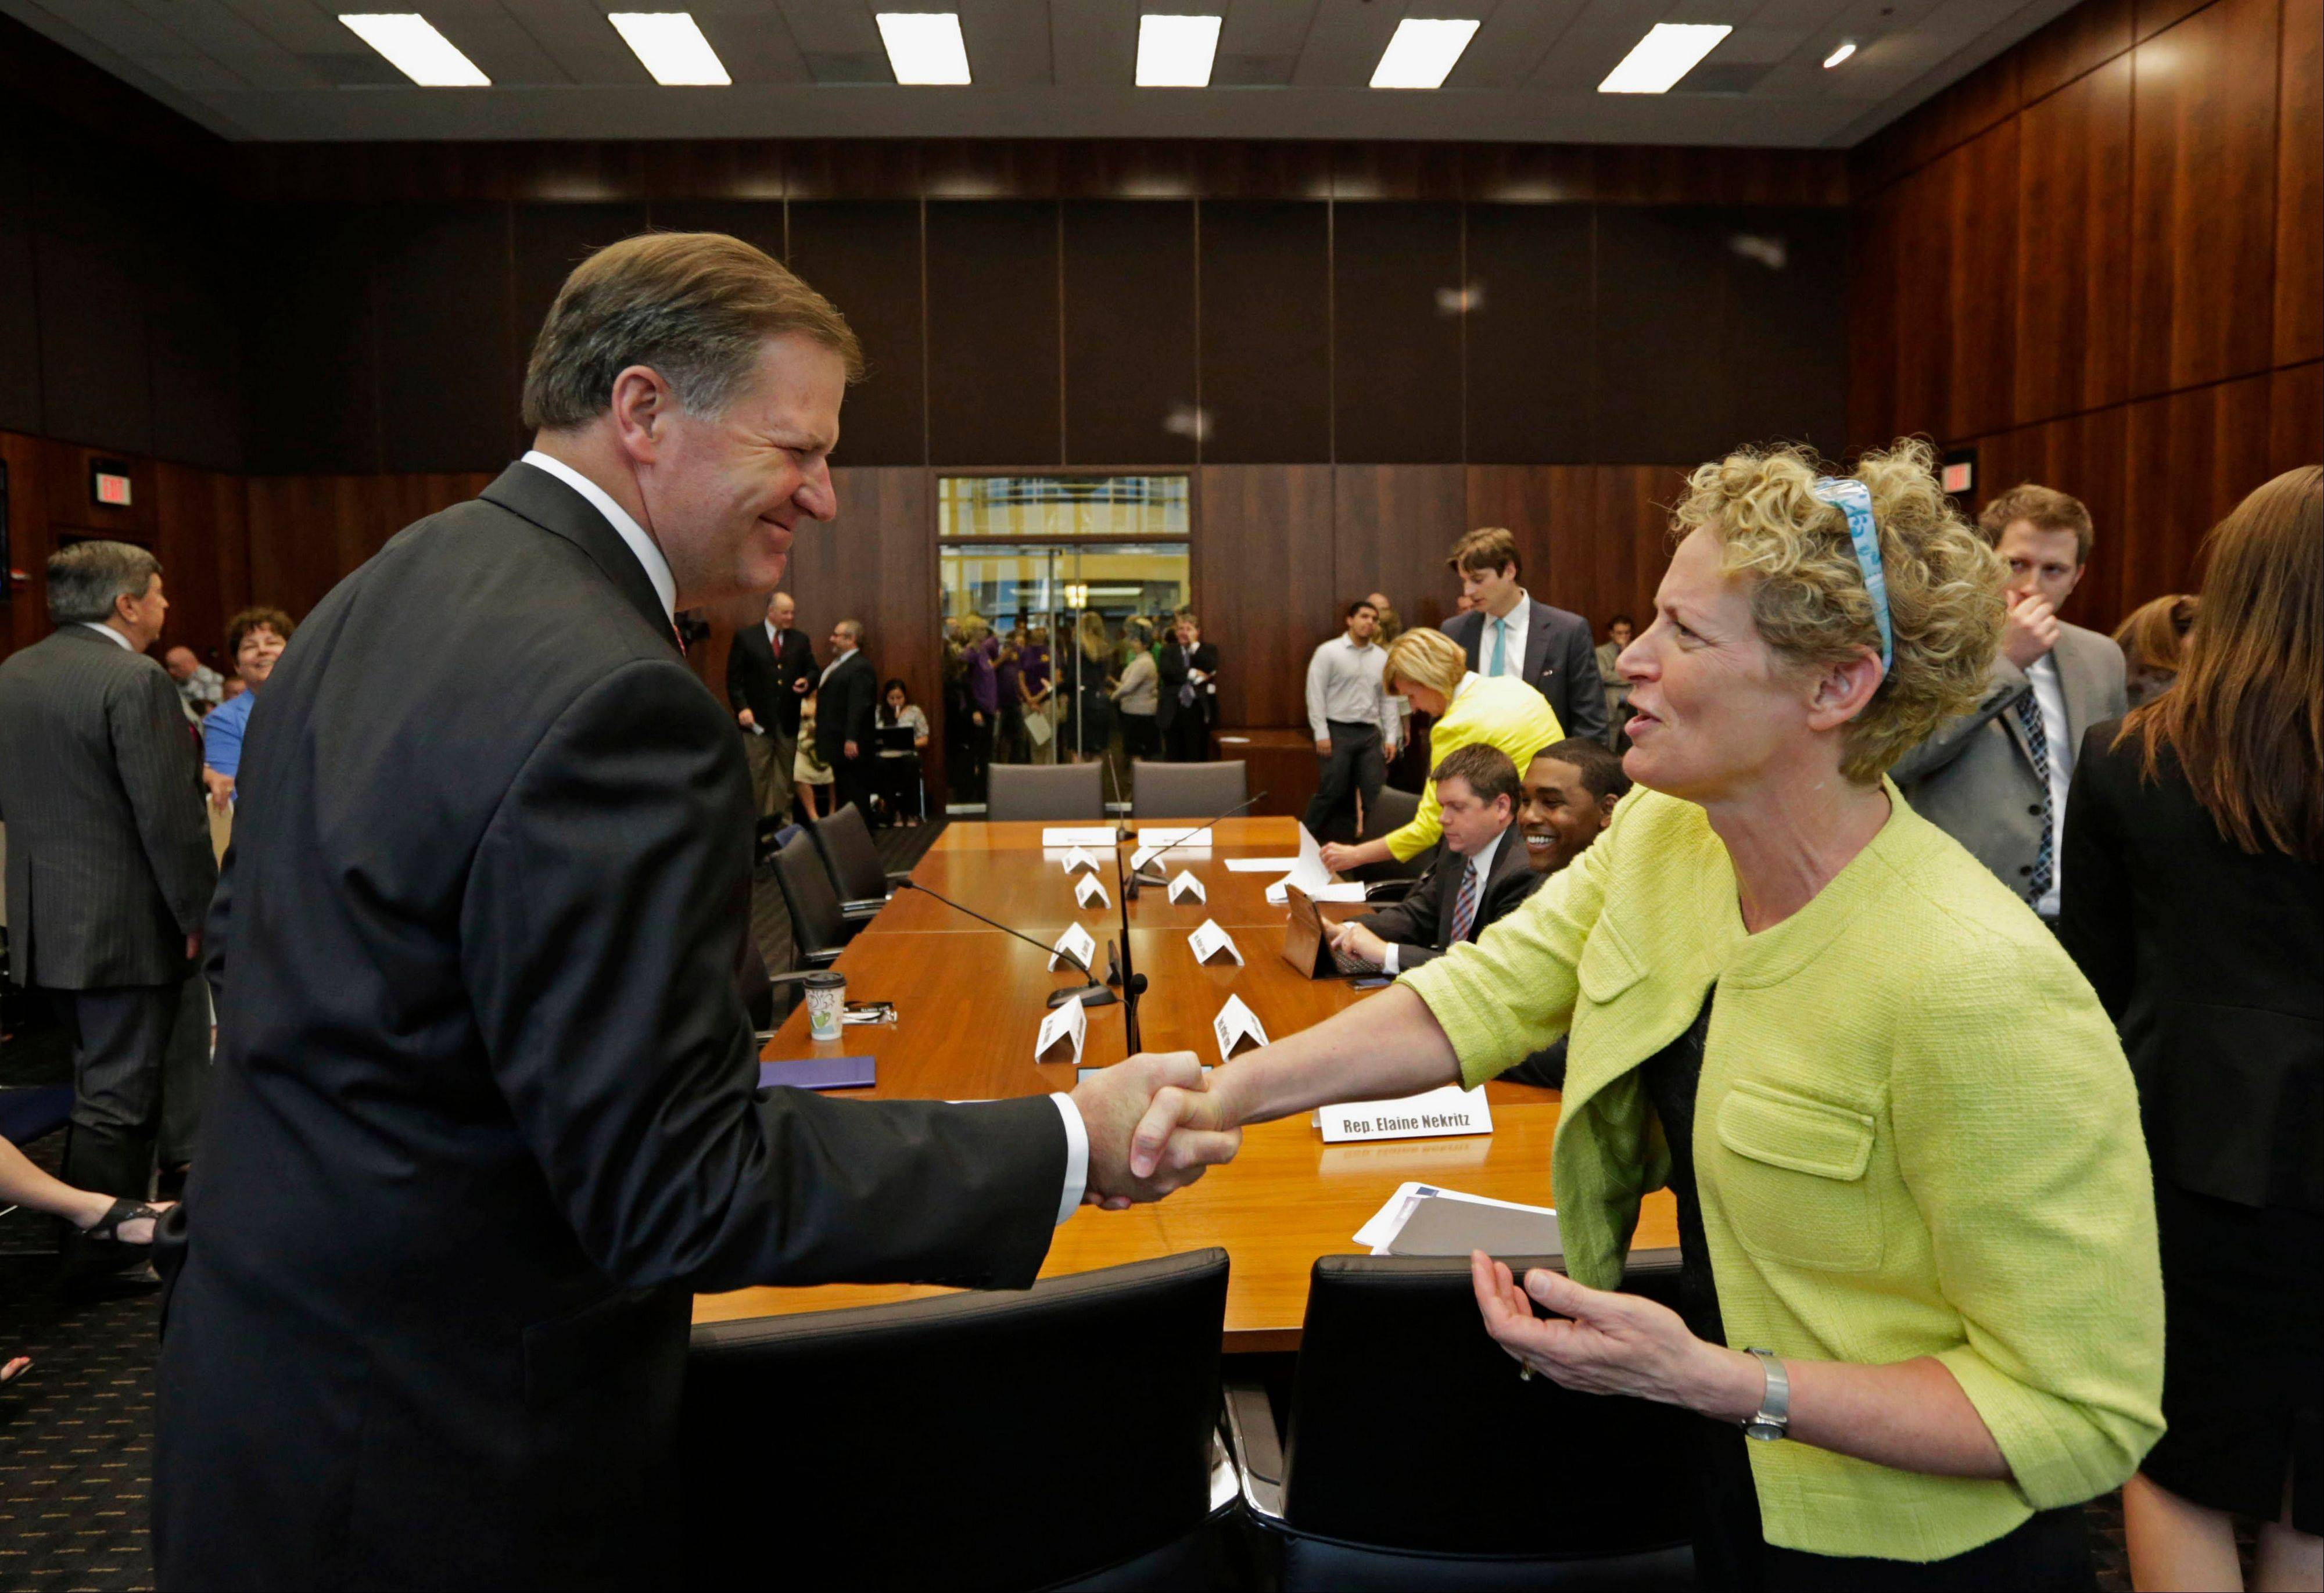 In this June 27, 2013 file photo, Illinois state Sen. Bill Brady, left, and state Rep. Elaine Nekritz of Northbrook, shake hands before apublic pension hearing in Chicago. Lawmakers say they are making progress on a deal to solve Illinoisí $97 billion pension crisis, but are not confident there will be a vote as the annual fall legislative session enters its final days beginning Tuesday.